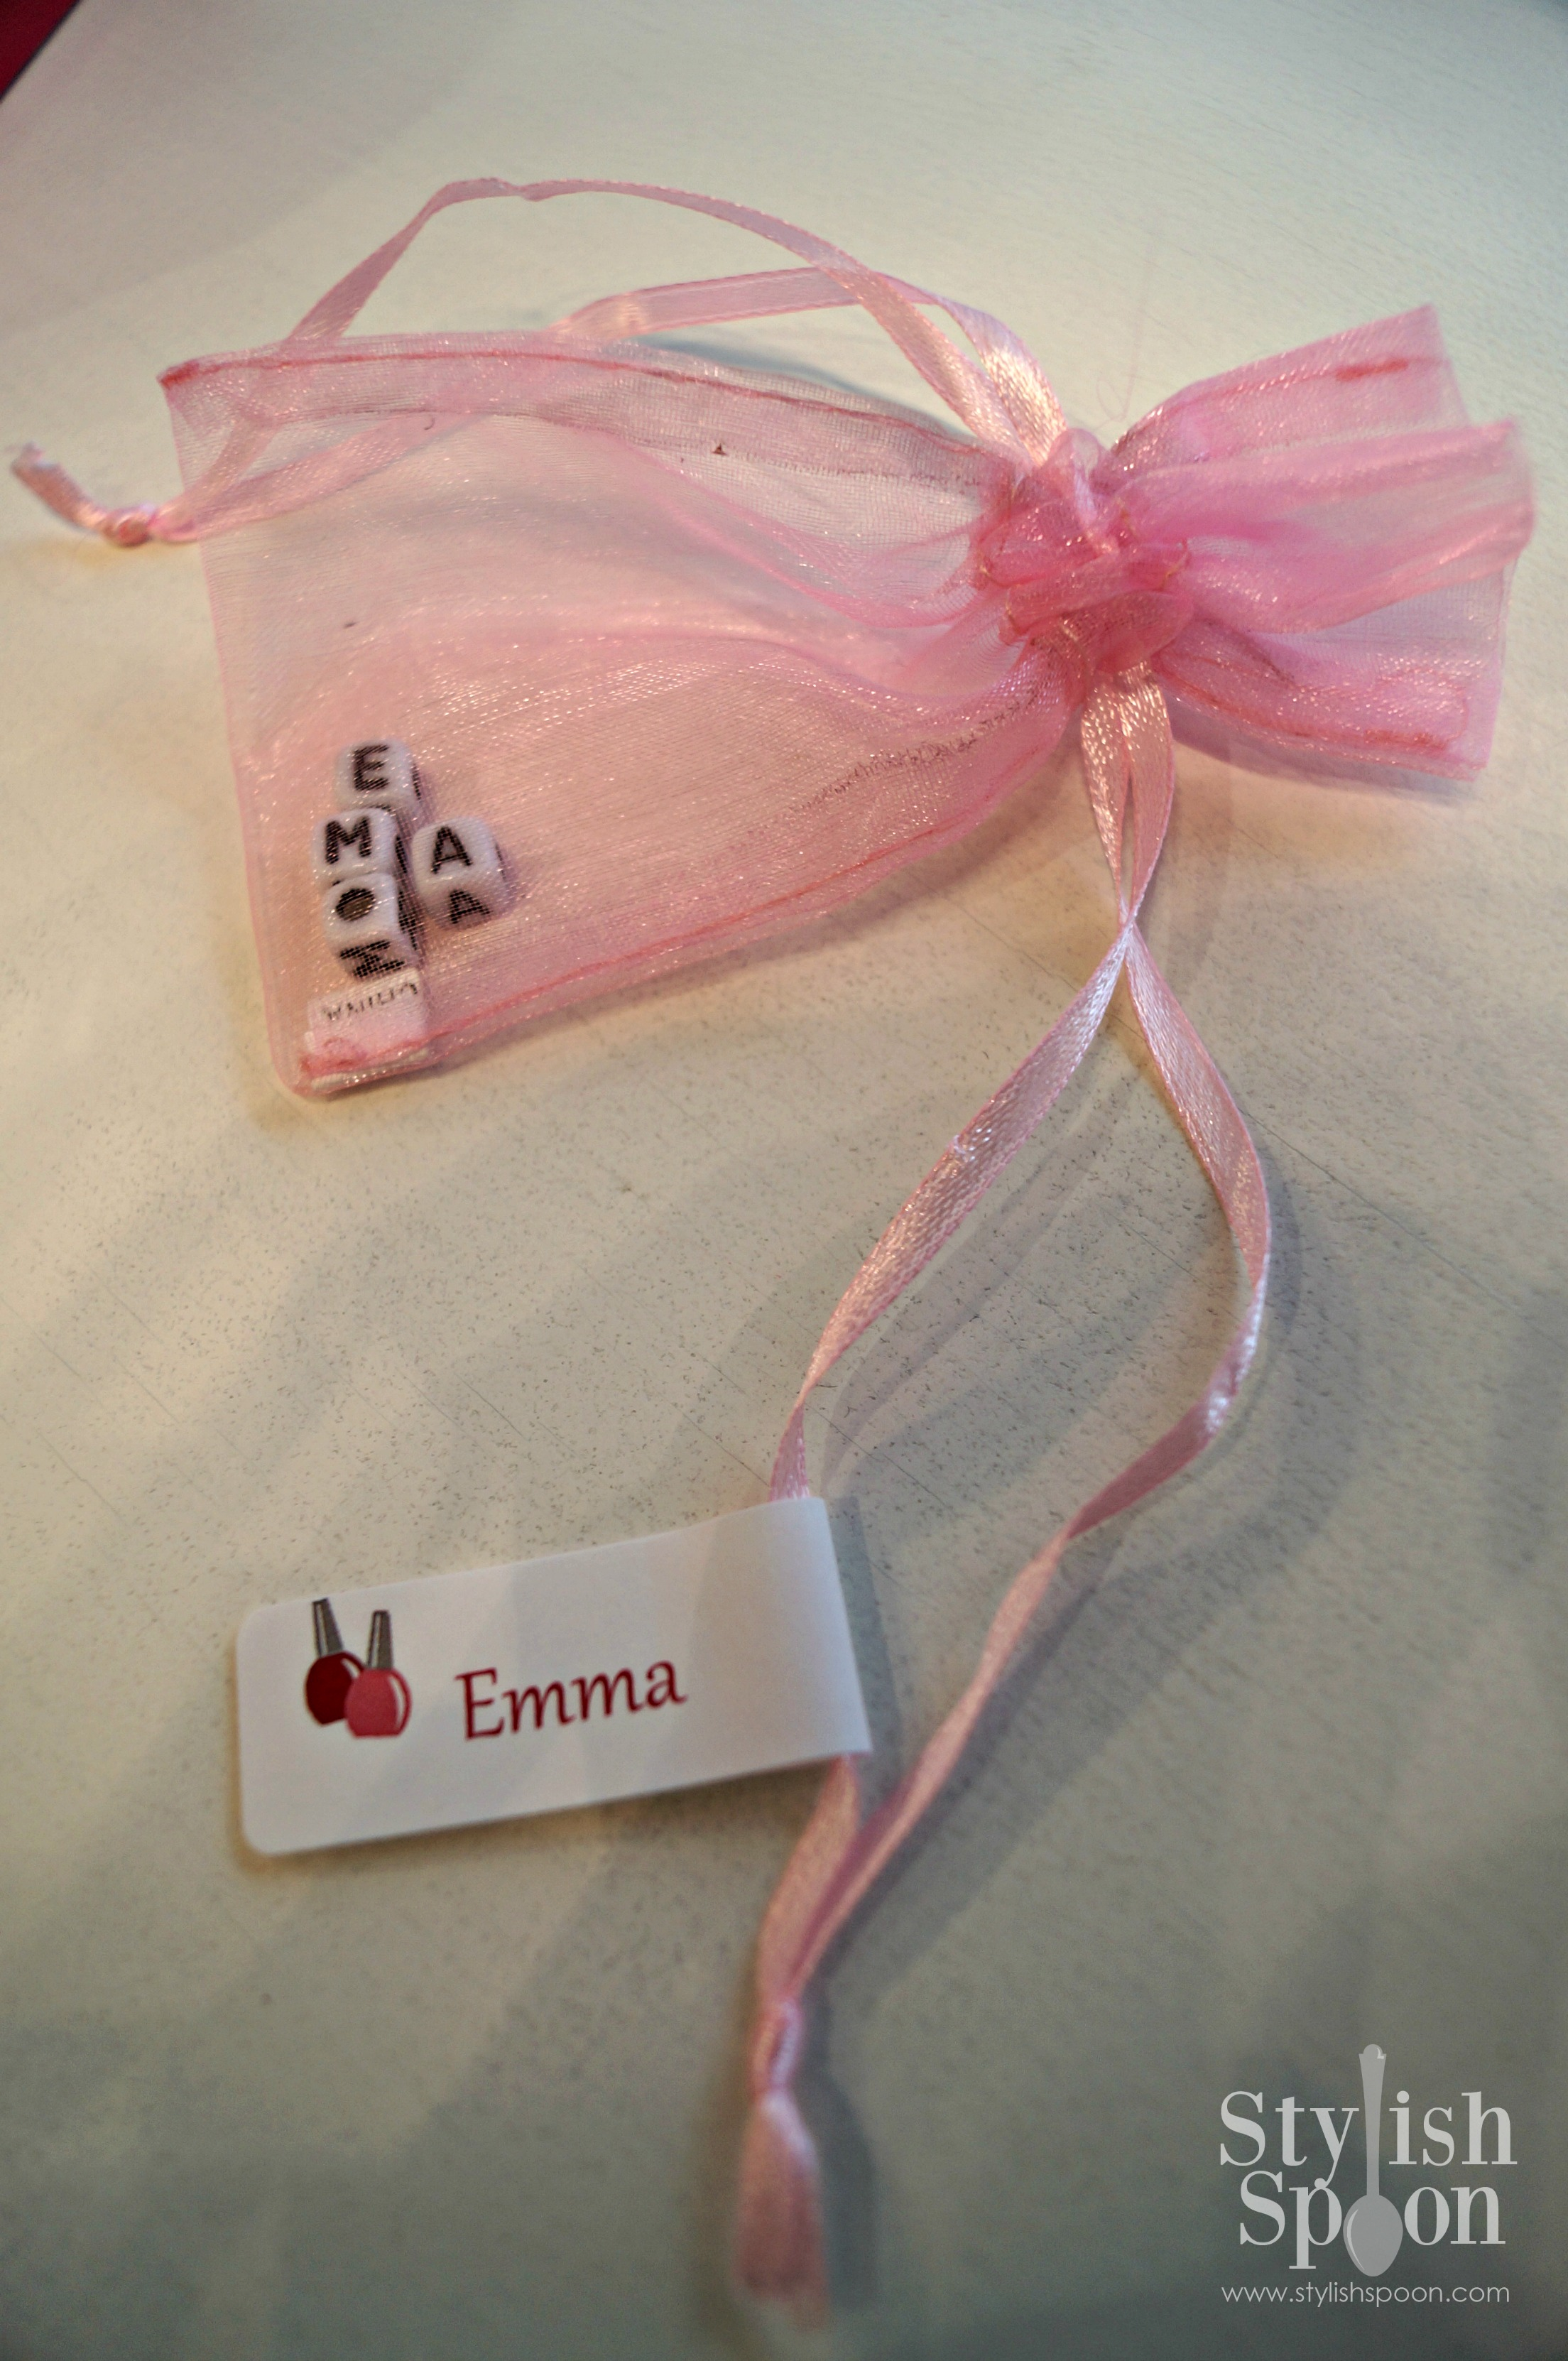 Name beads in pink organza jewelry bags.